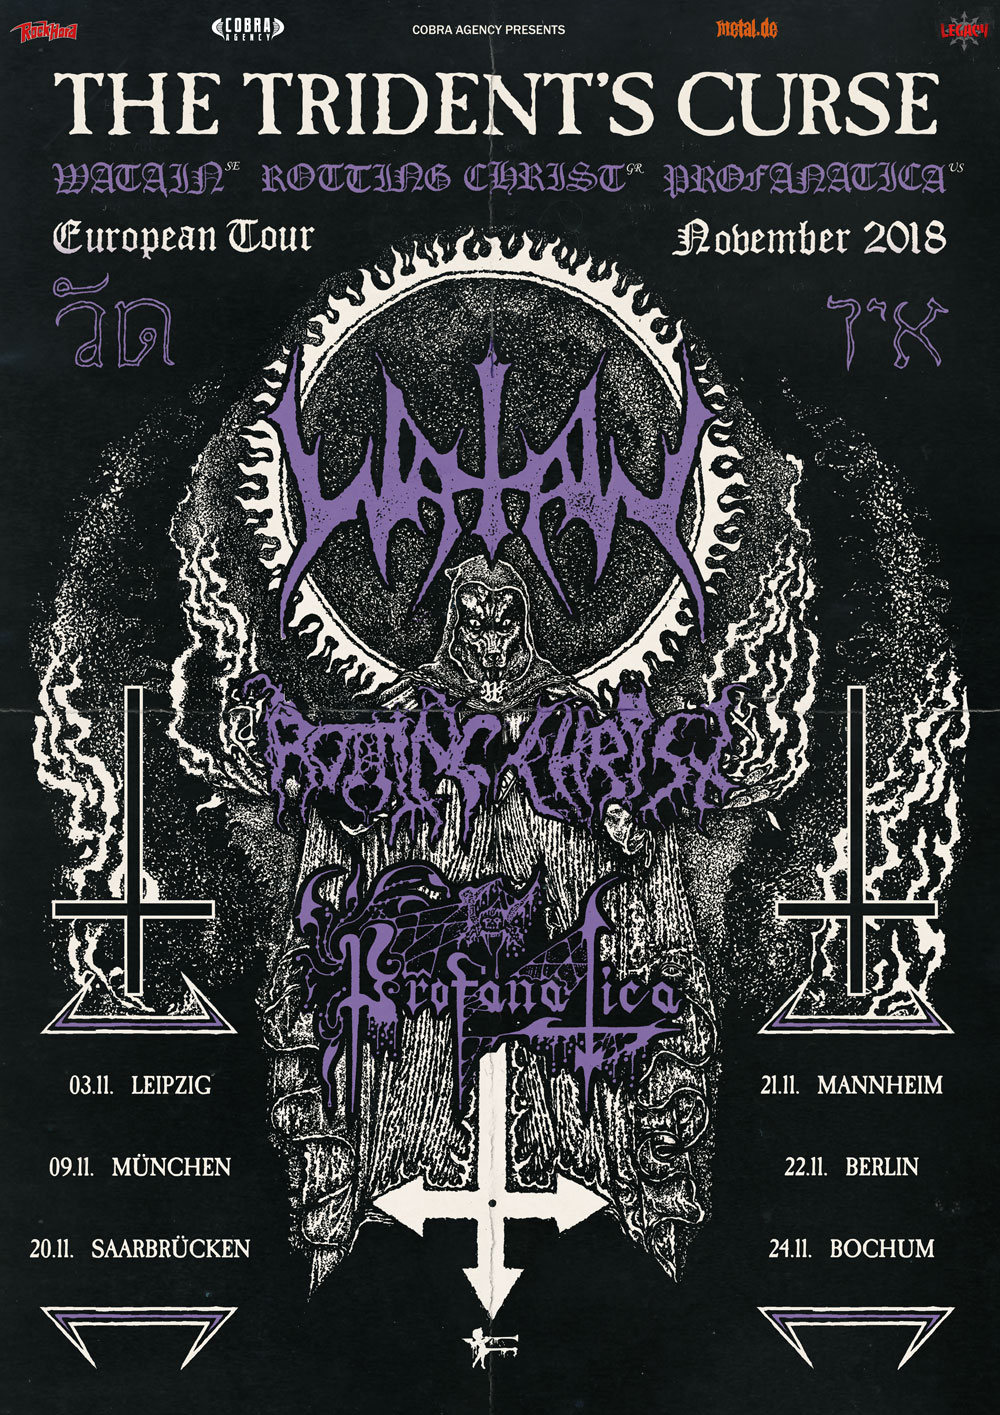 WATAIN, ROTTING CHRIST & PROFANATICA